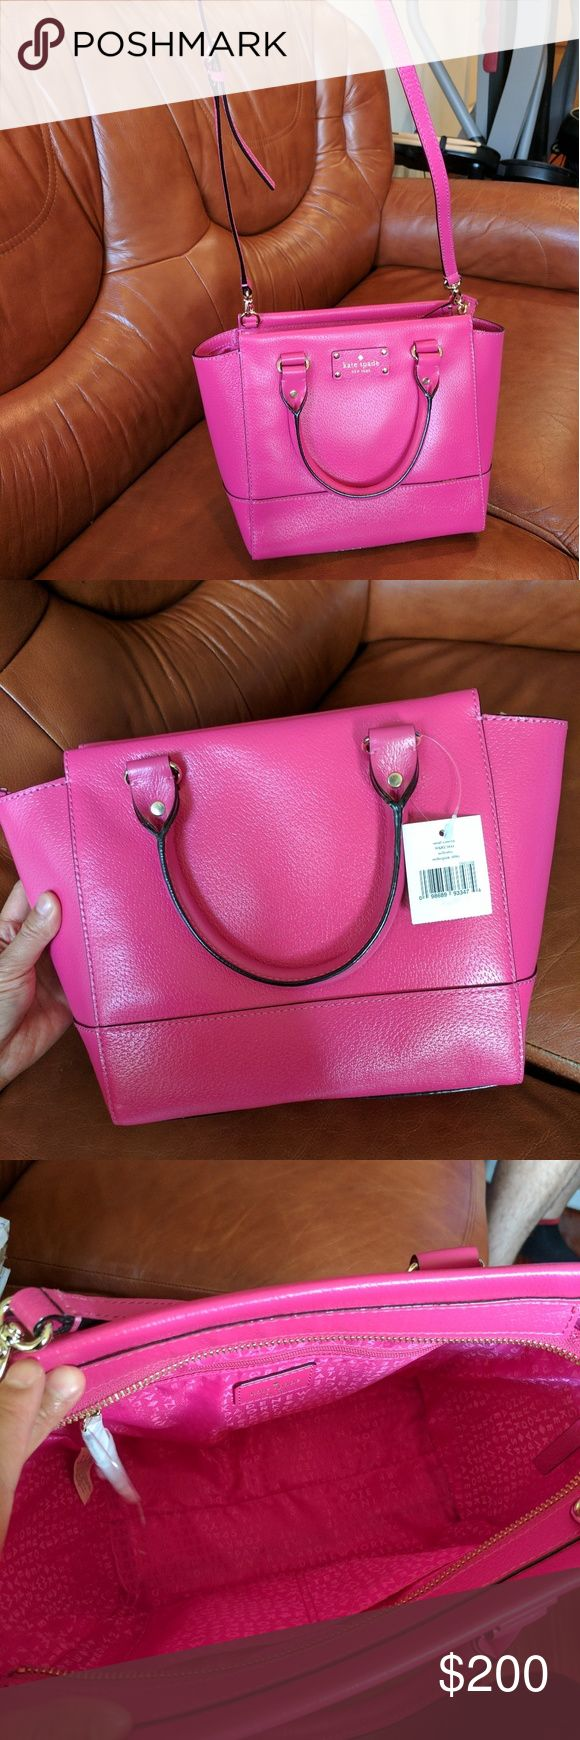 """NWT Kate Spade pink shoulder bag Brand new with tags!  Features  Boarskin-embossed leather with 14-karat light gold plated hardware  9.5"""" L (bottom width) x 9.5"""" H x 5.5"""" D  Handles with 4"""" drop; optional, adjustable strap that can be worn on shoulder or cross-body  Top-zip closure  Interior features zip, cellphone and multi-function pockets kate spade Bags Shoulder Bags"""